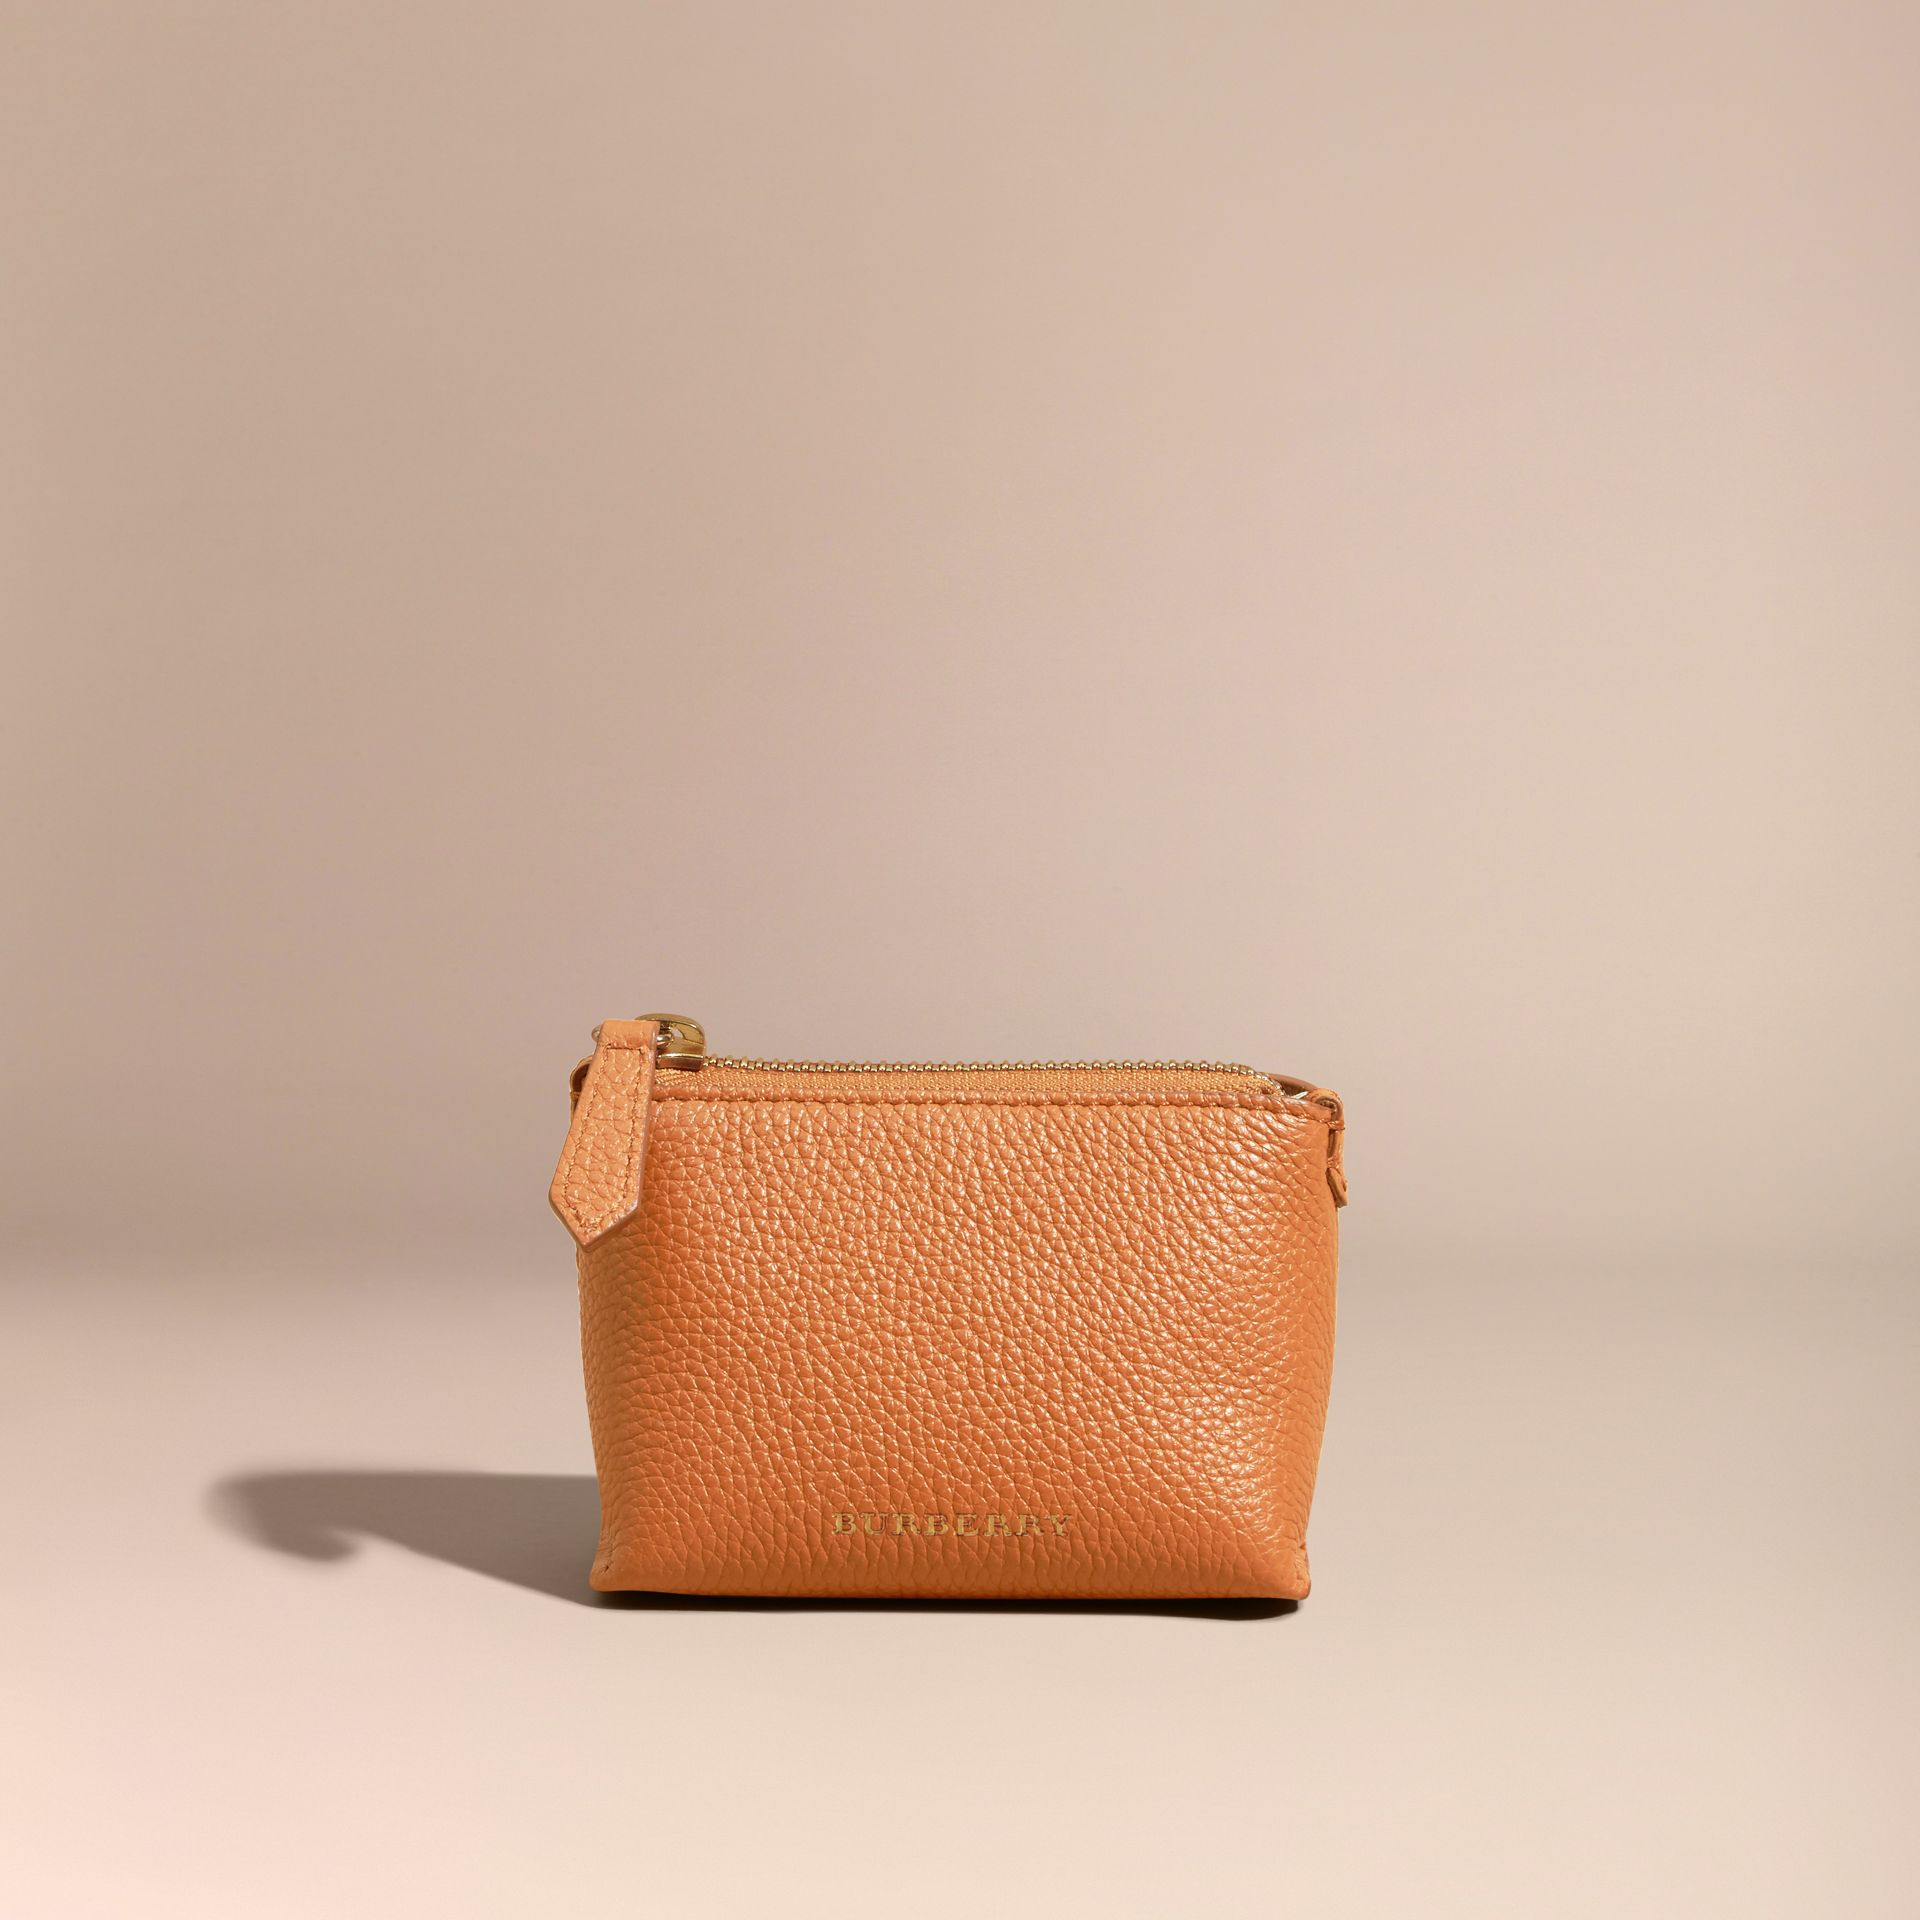 Grainy Leather Lipstick Case in Orange Umber - Women | Burberry - gallery image 6